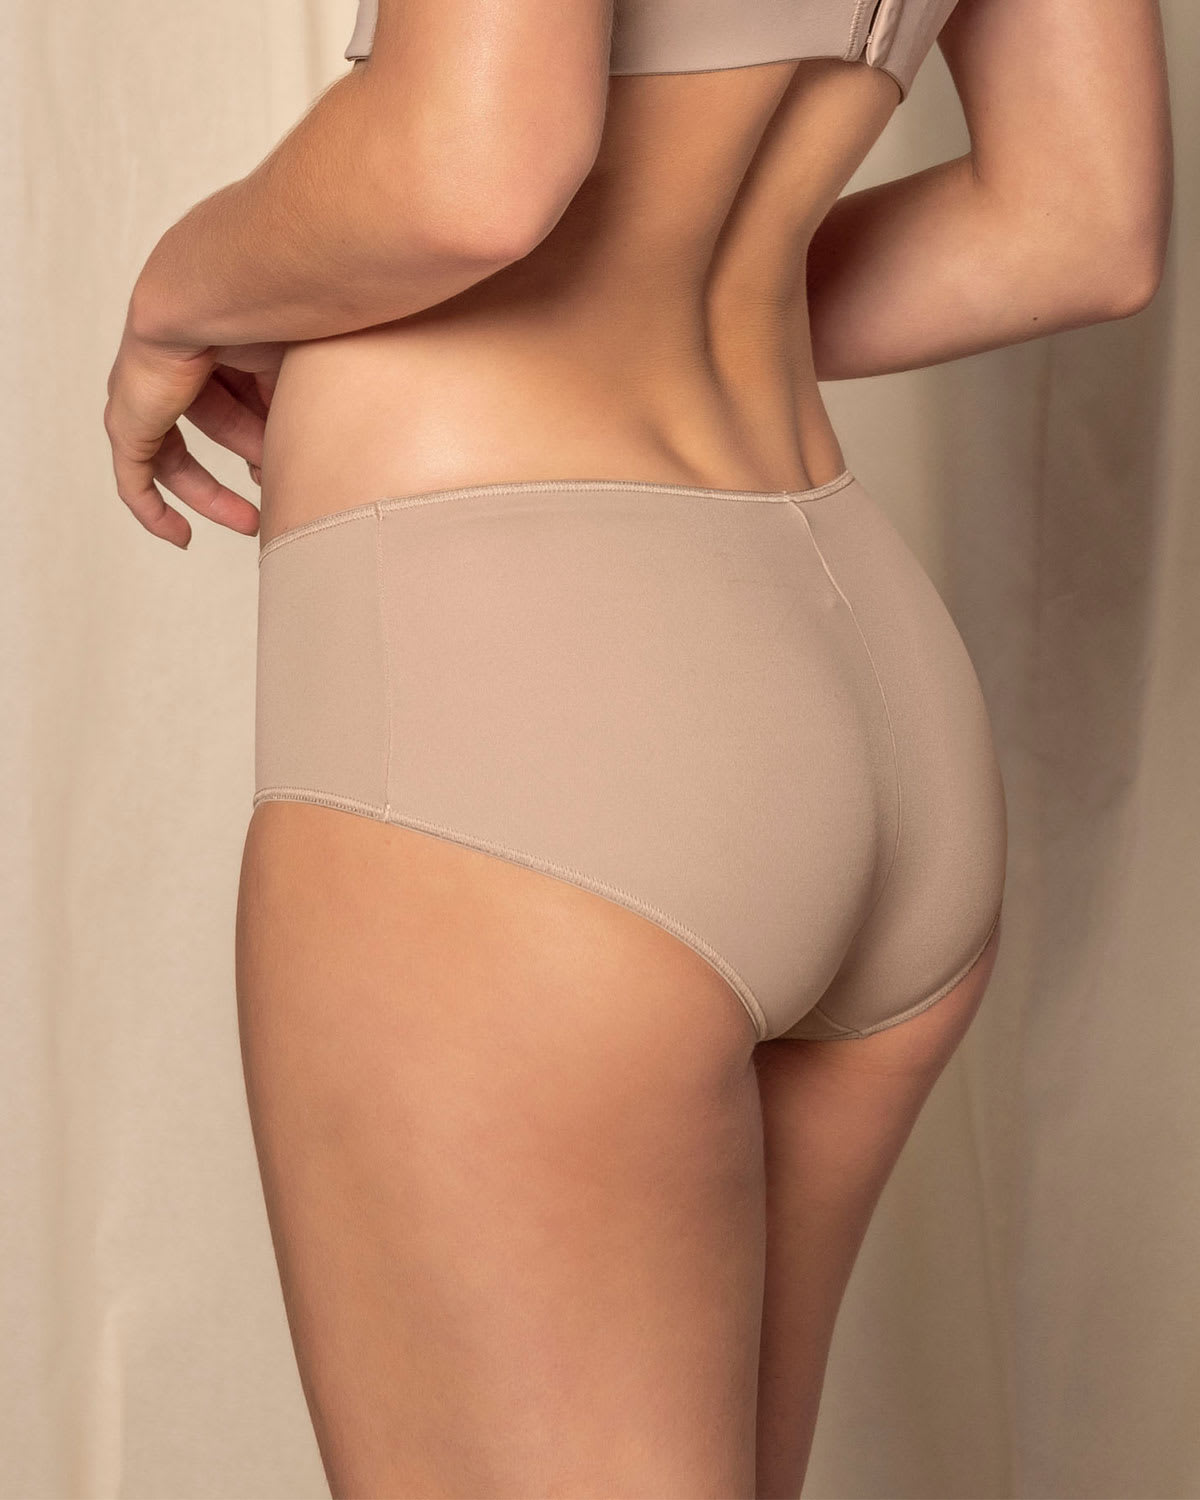 Low-Rise Hip Hugger Panty with Ultra-Flat Seams